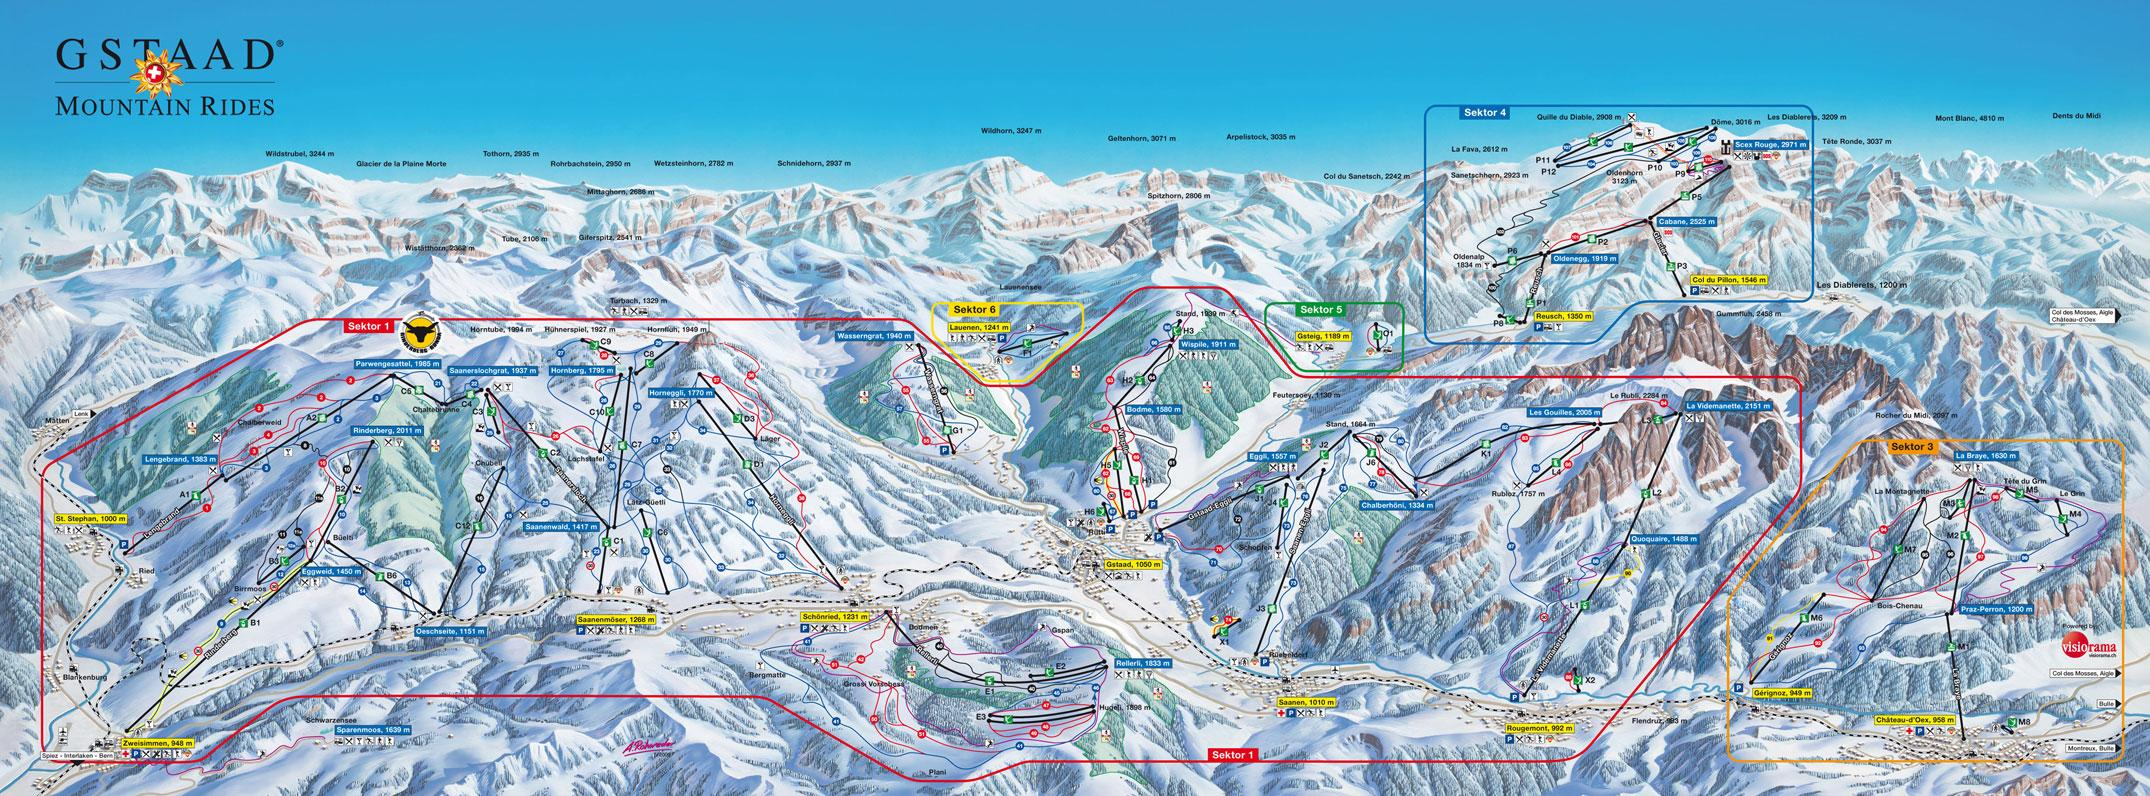 park city ski resort trail map with Gstaad Mountain Rides Piste Map on Snowbird likewise Mountain Resort Trail Map further 11005 likewise Trail Map likewise Maps.